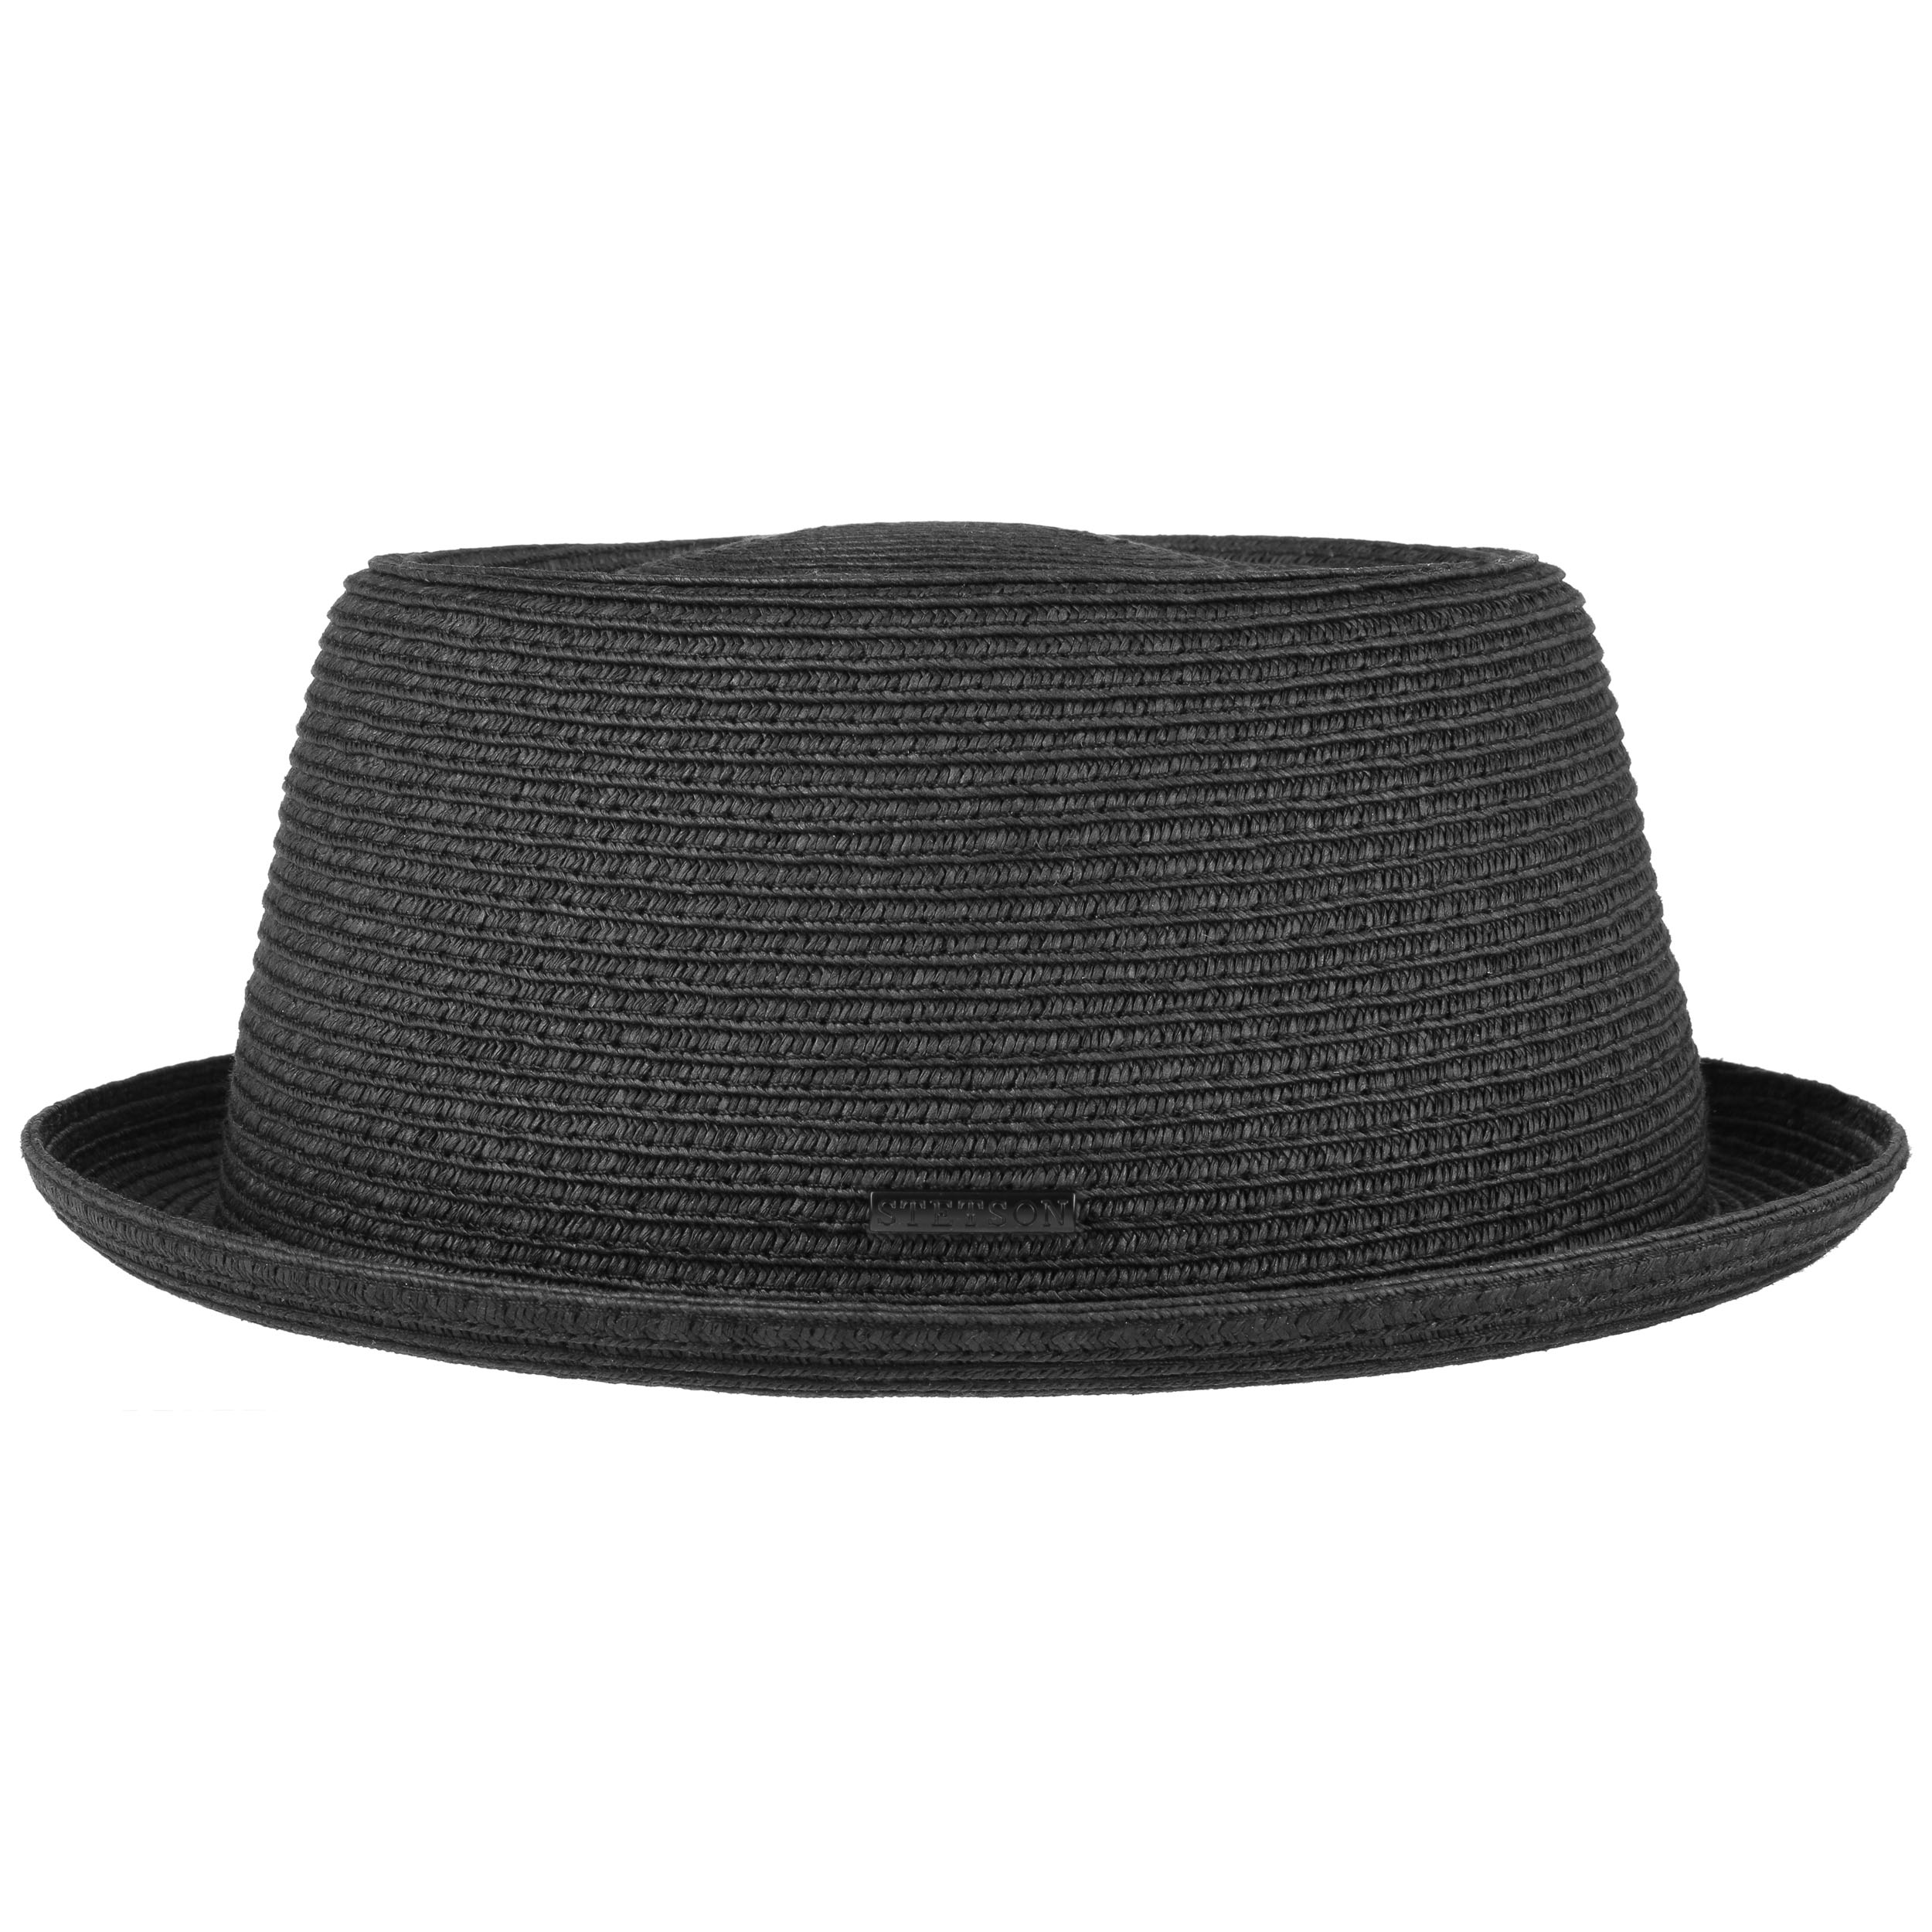 Stetson Pork Pie Toyo Black